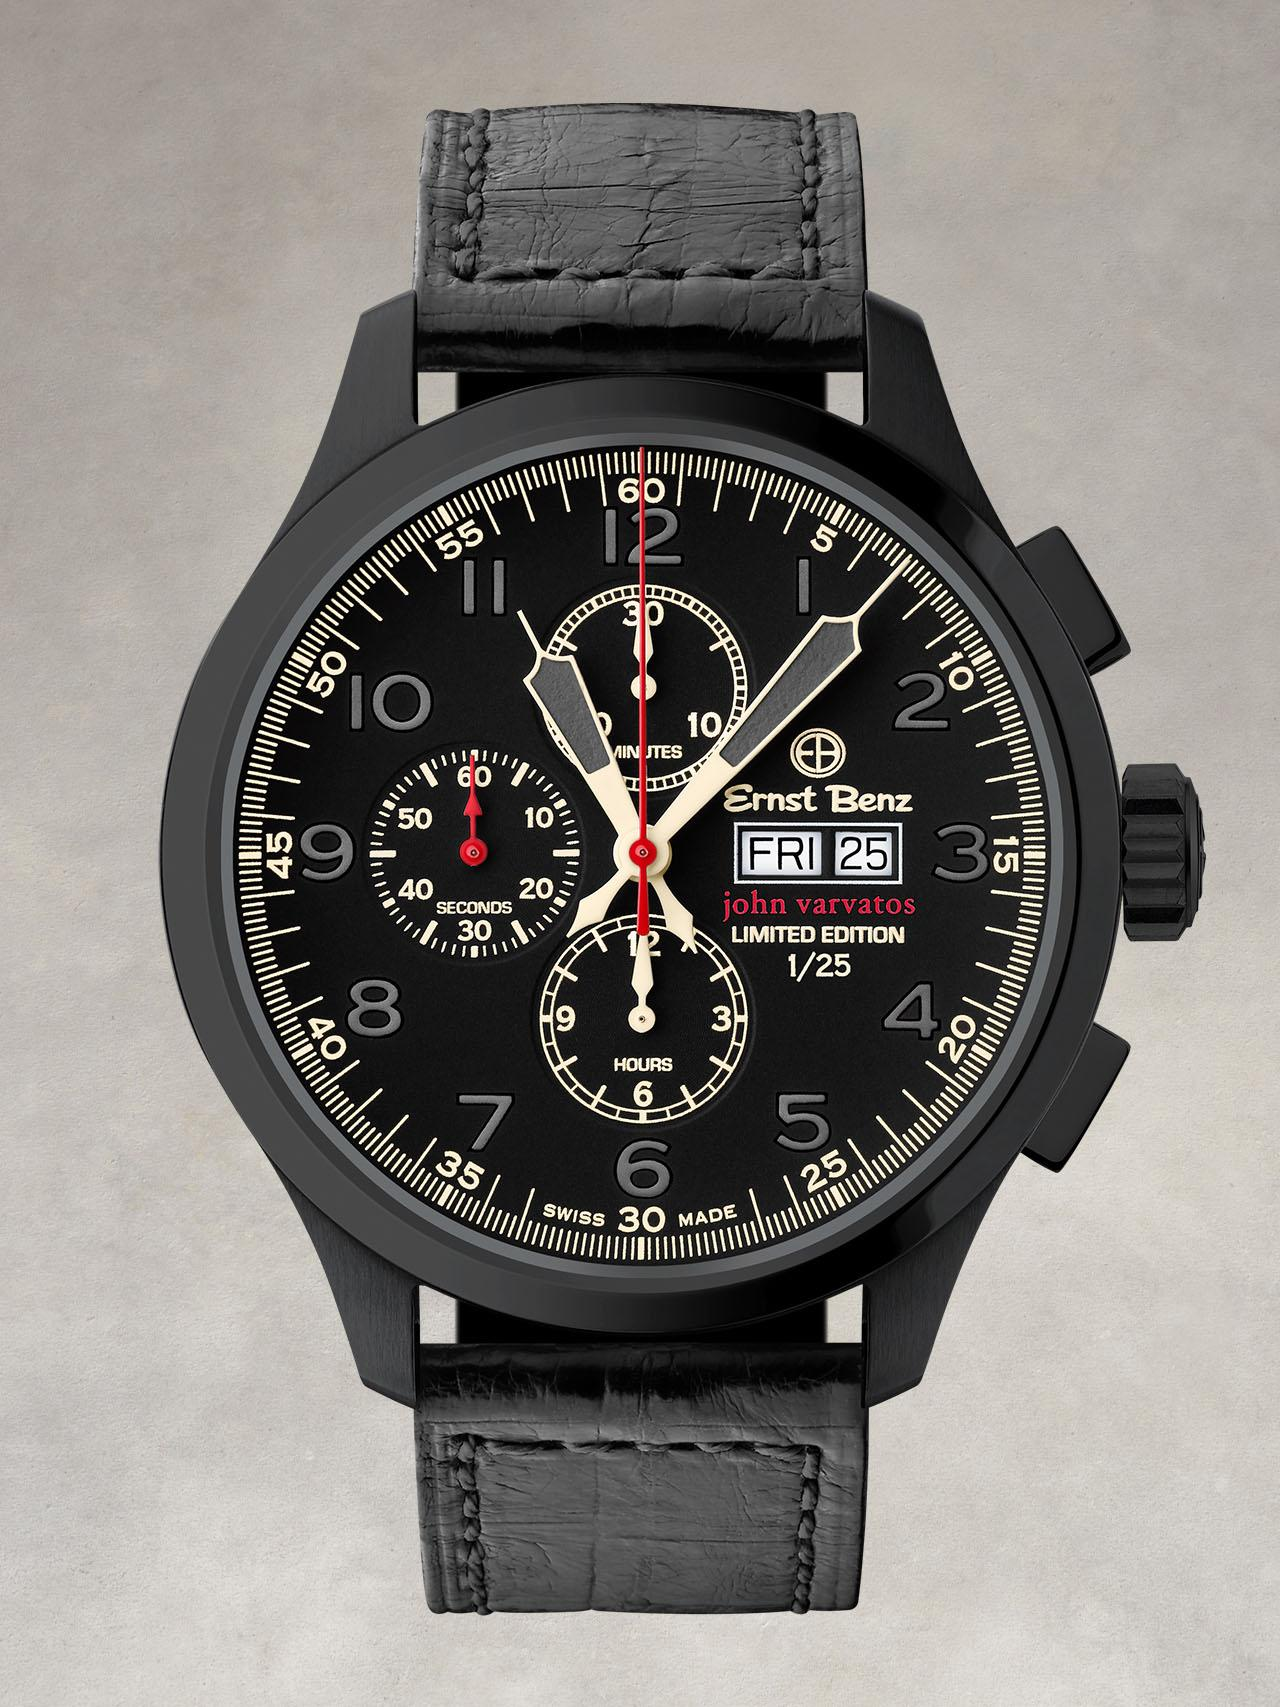 John Varvatos DLC Chronoscope Watch